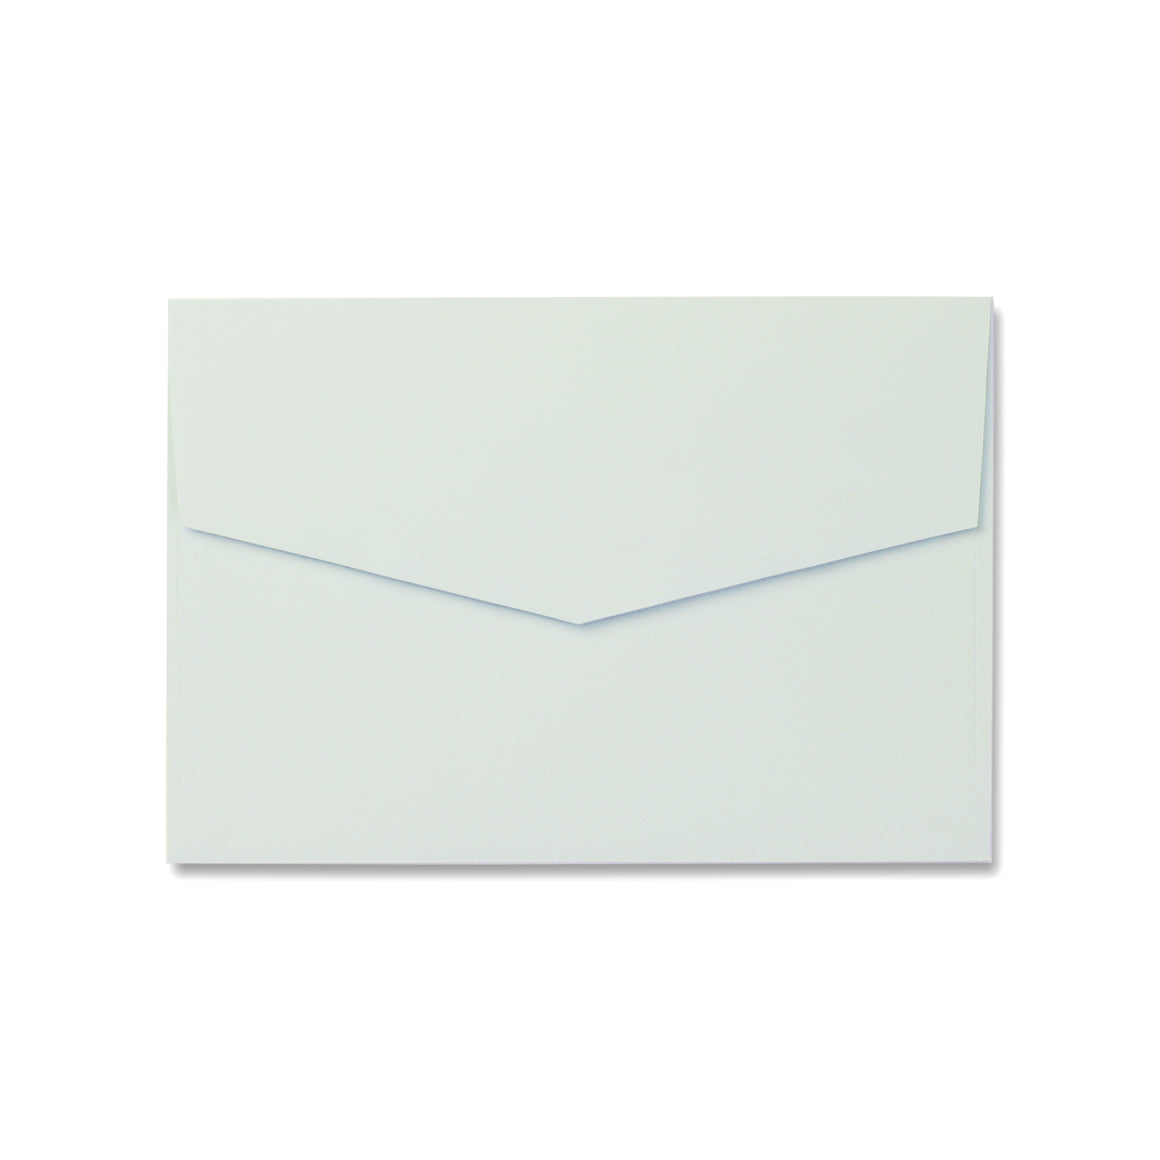 Mint 5x7 Envelopes for Invitations